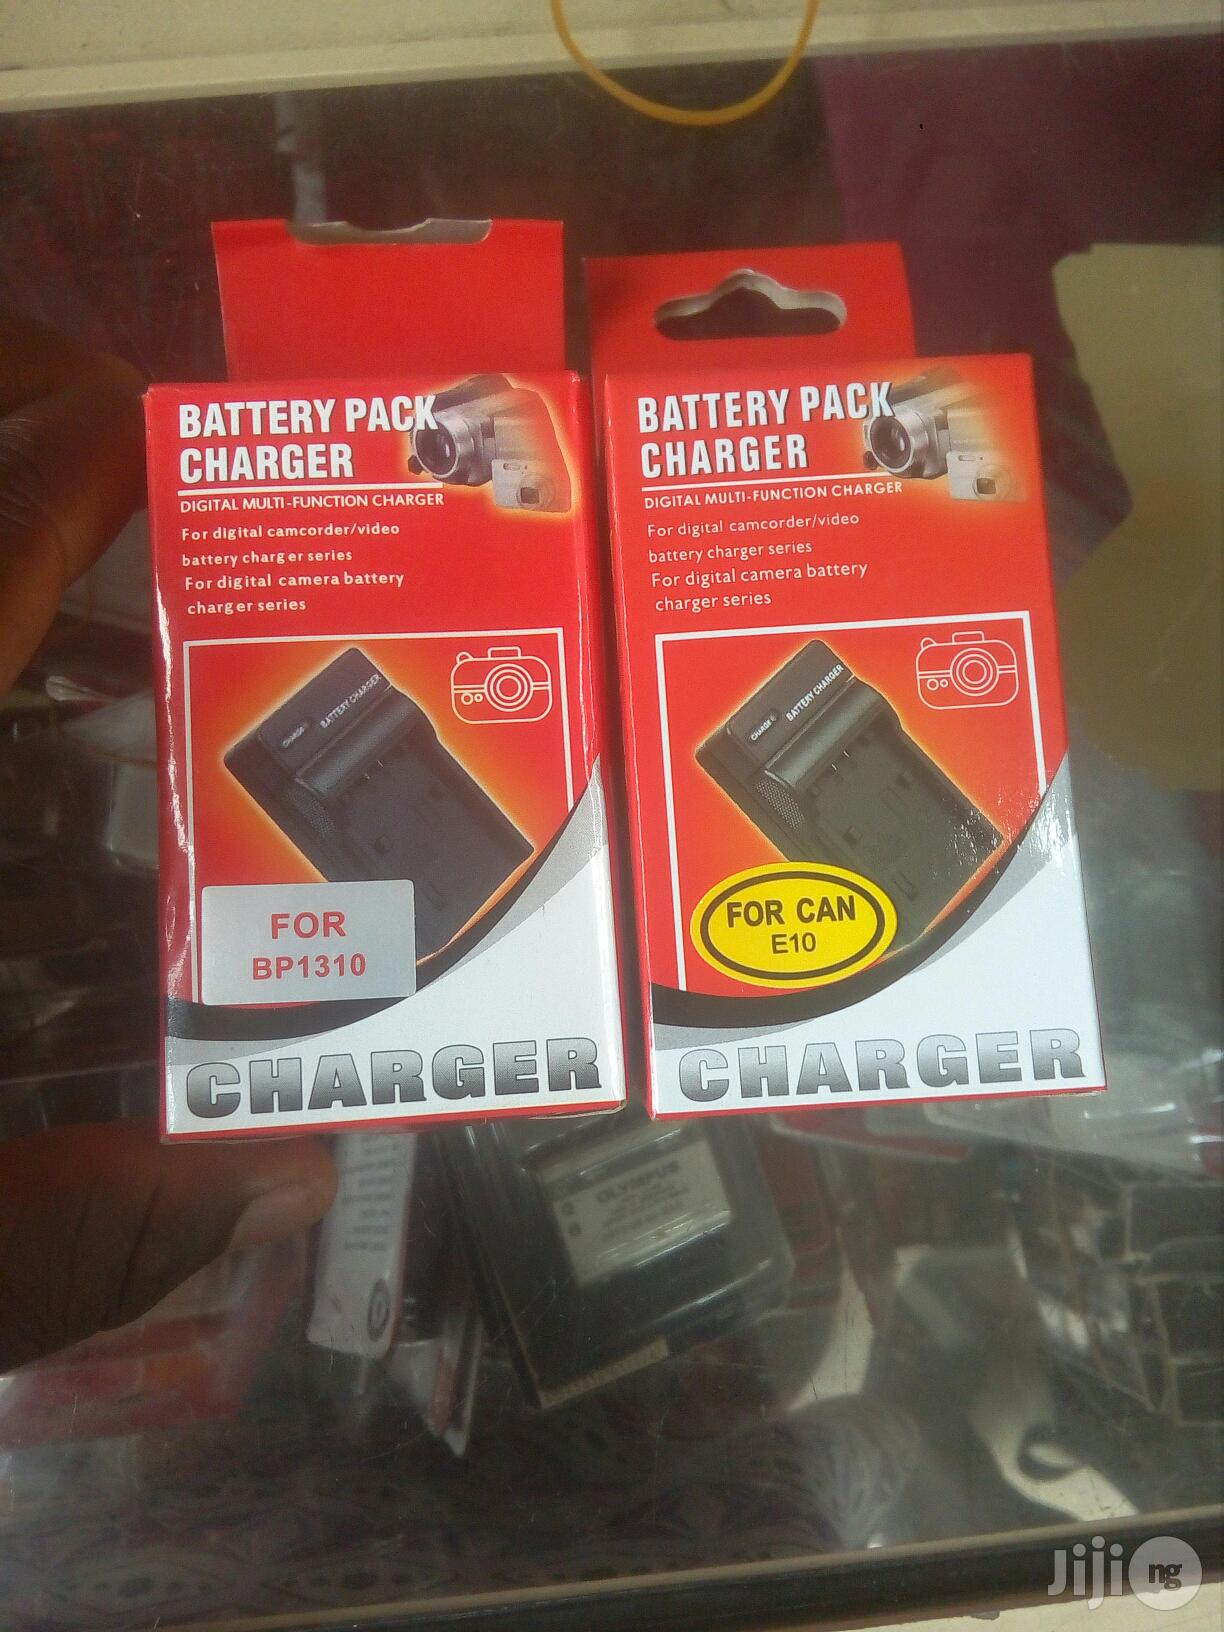 Battery Pack Charger For All Cameras Battery | Accessories & Supplies for Electronics for sale in Ikeja, Lagos State, Nigeria